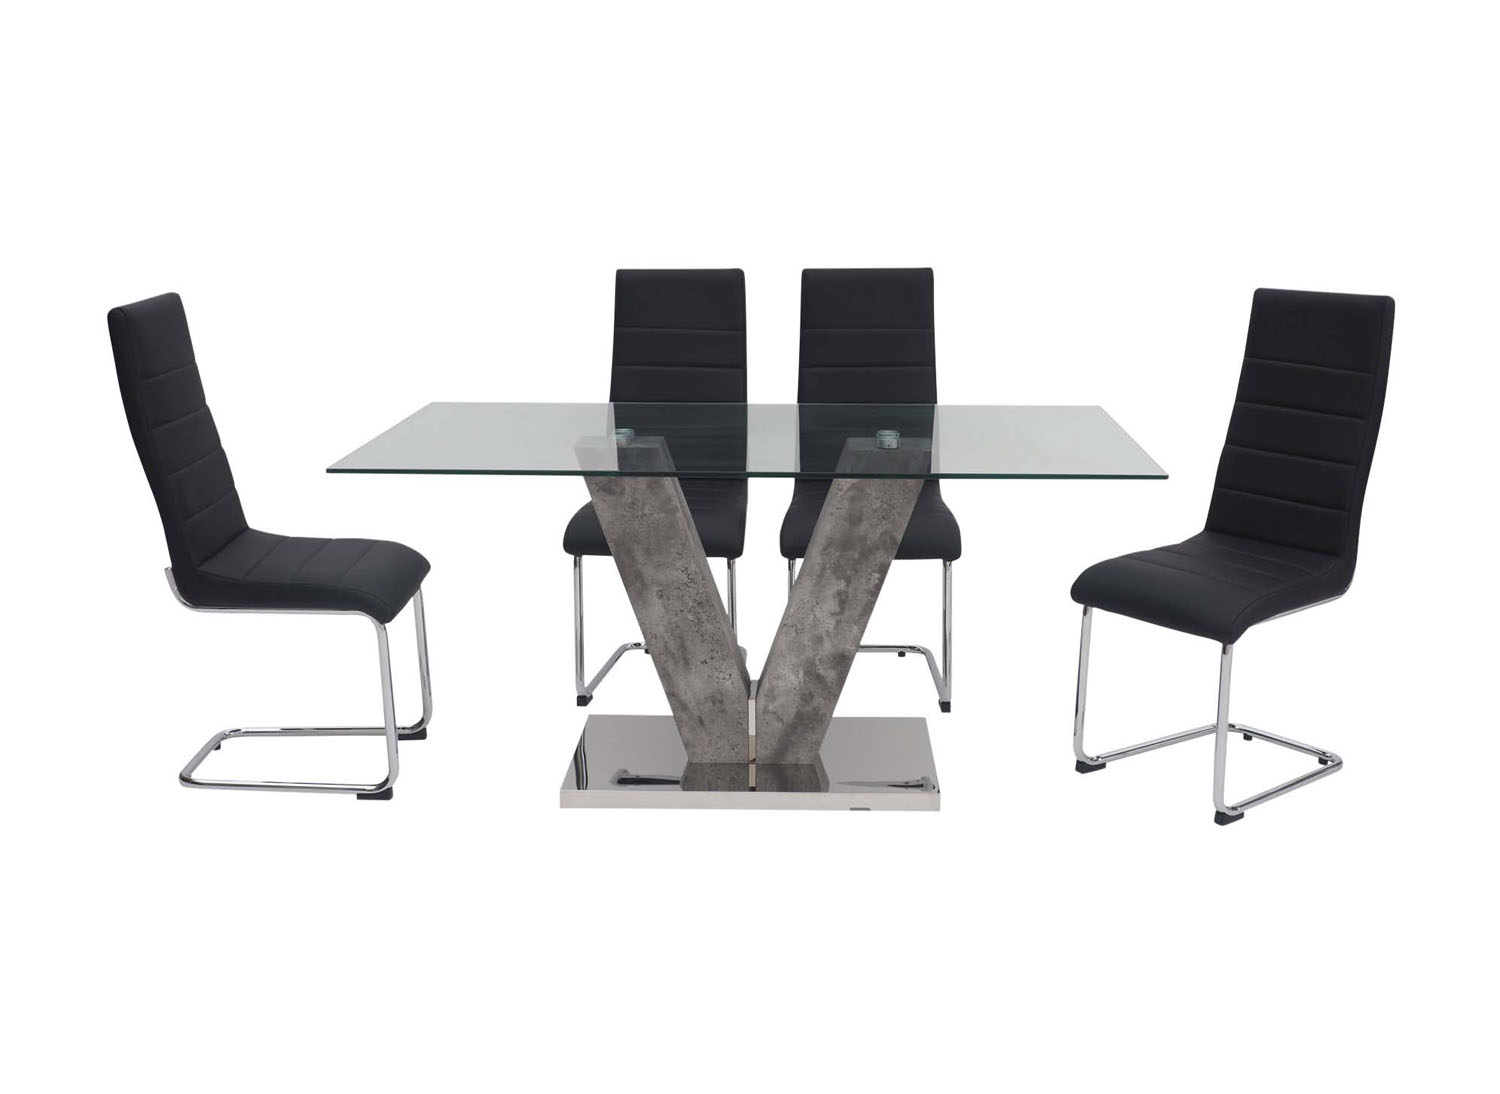 https://www.firstfurniture.co.uk/pub/media/catalog/product/d/o/dolce_dining_table_clear_hugo_chair_black2.jpg